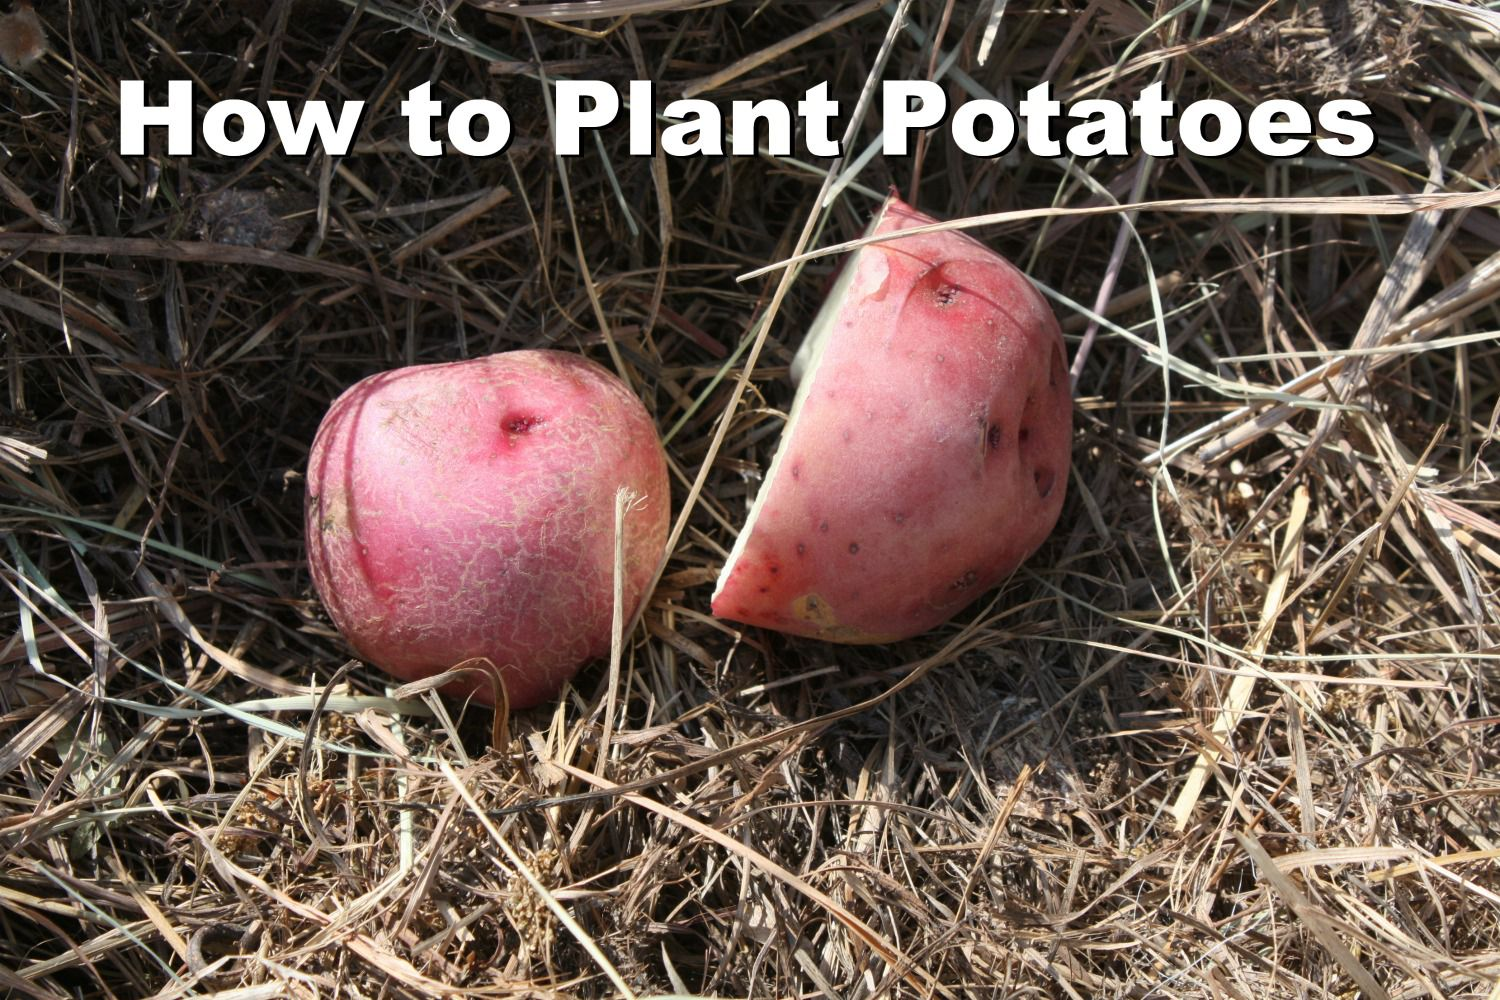 How to Grow Organic Potatoes in Your Home Garden